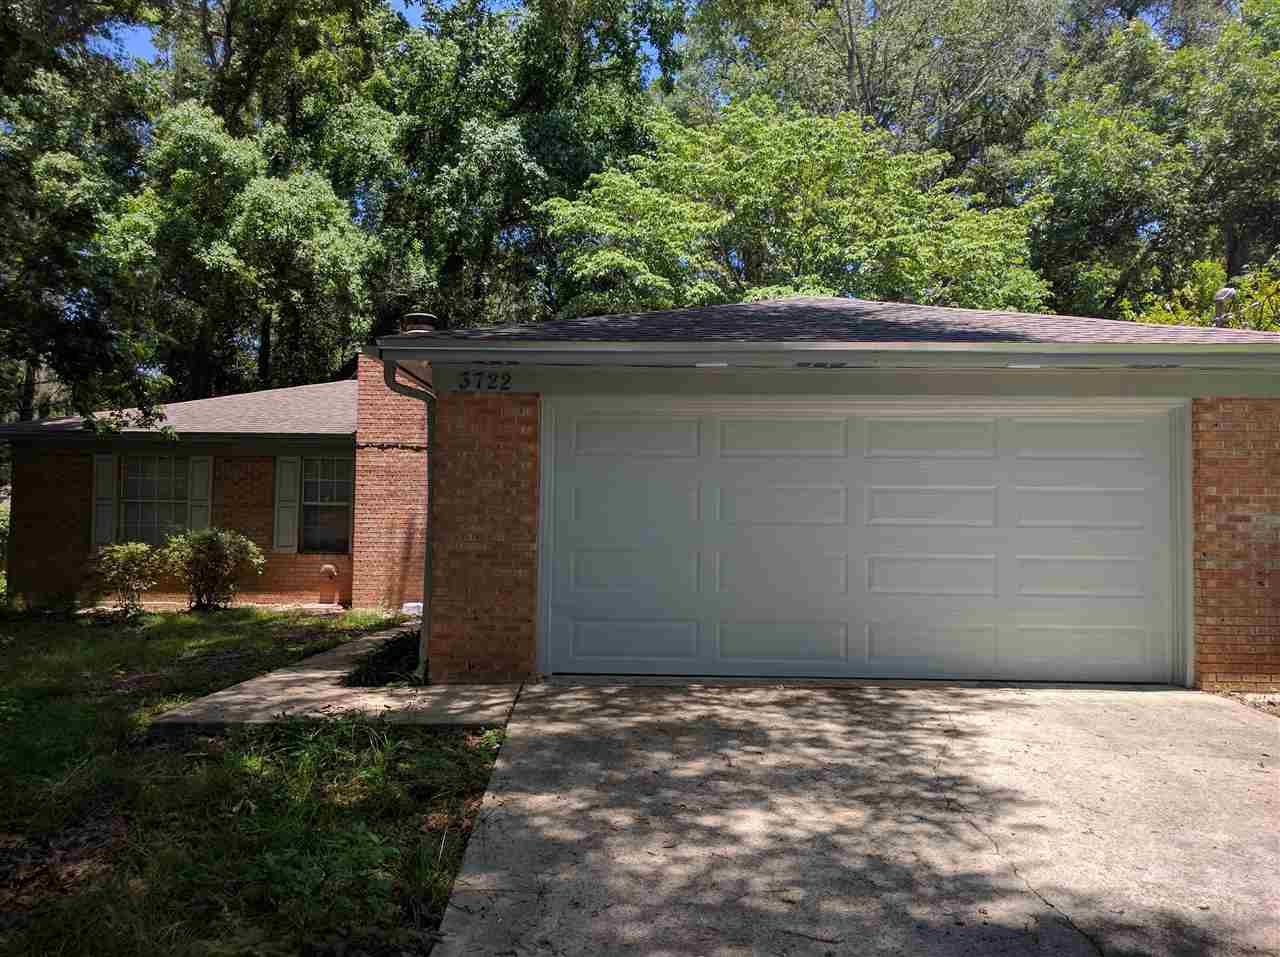 4 Bedroom 2 Bath with garage Rental Available Middle of August. Fenced in backyard. No Pets